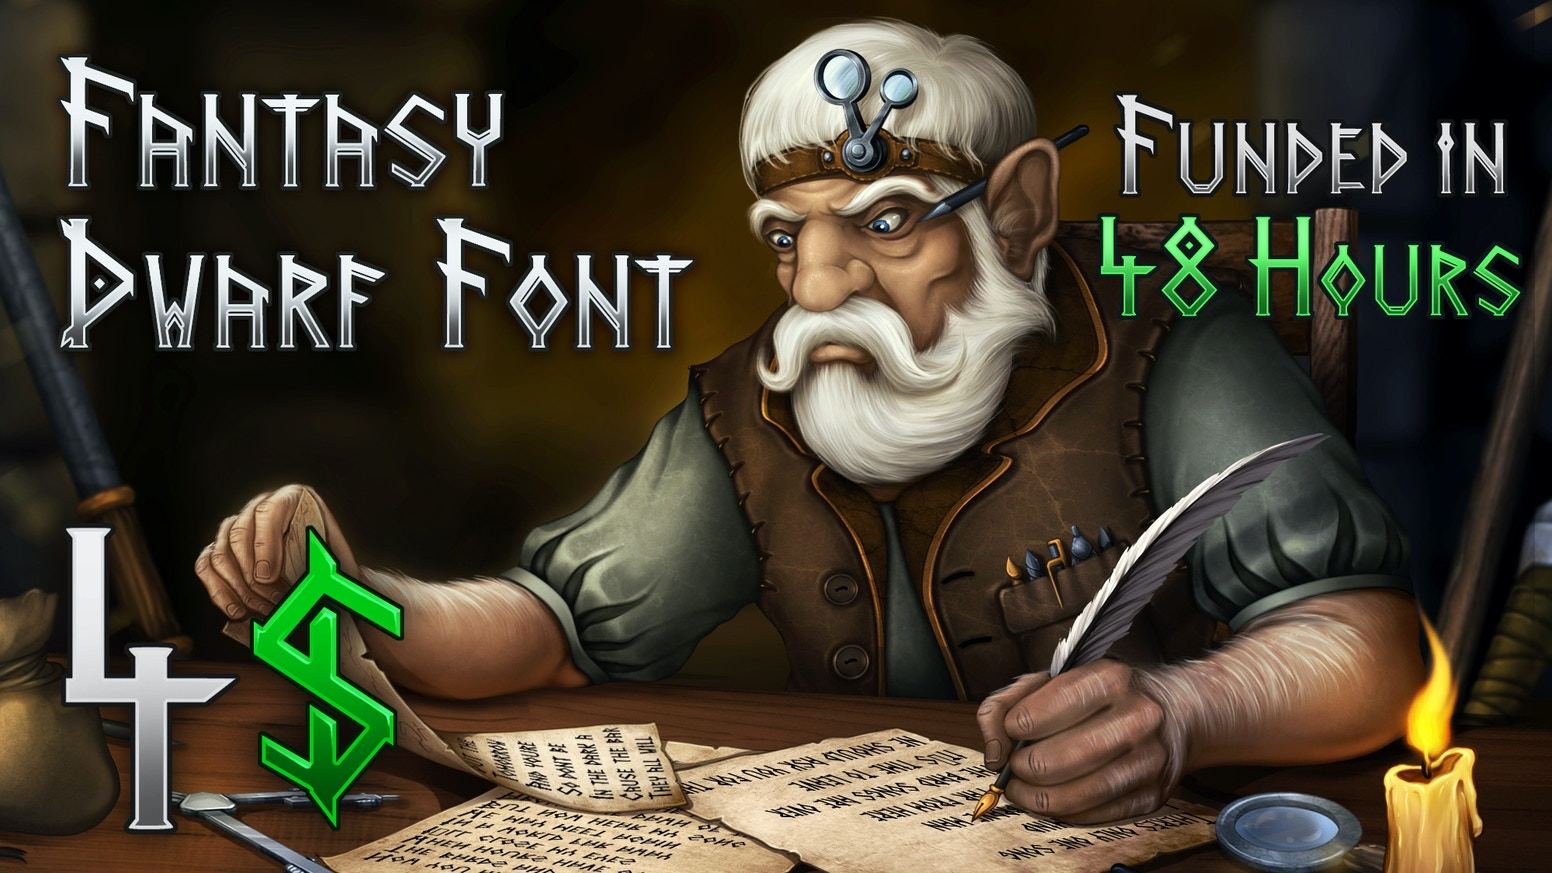 Write like a true Dwarven Runesmith! A font with more than 70 characters for your fantasy project, website, film, video or artbook.